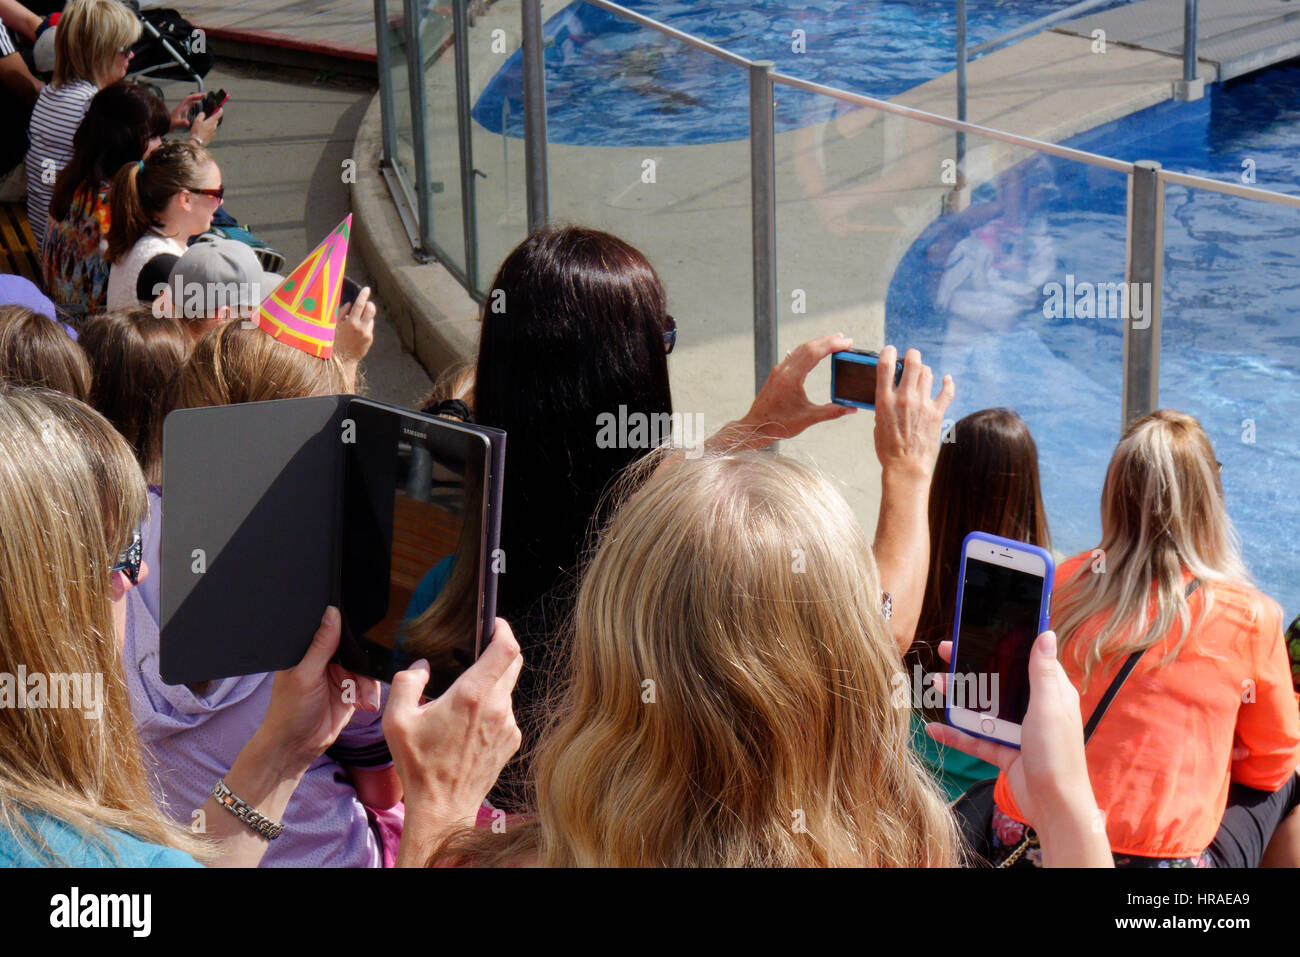 People taking photos of the seals in Quebec aquarium with phones and tablets - Stock Image